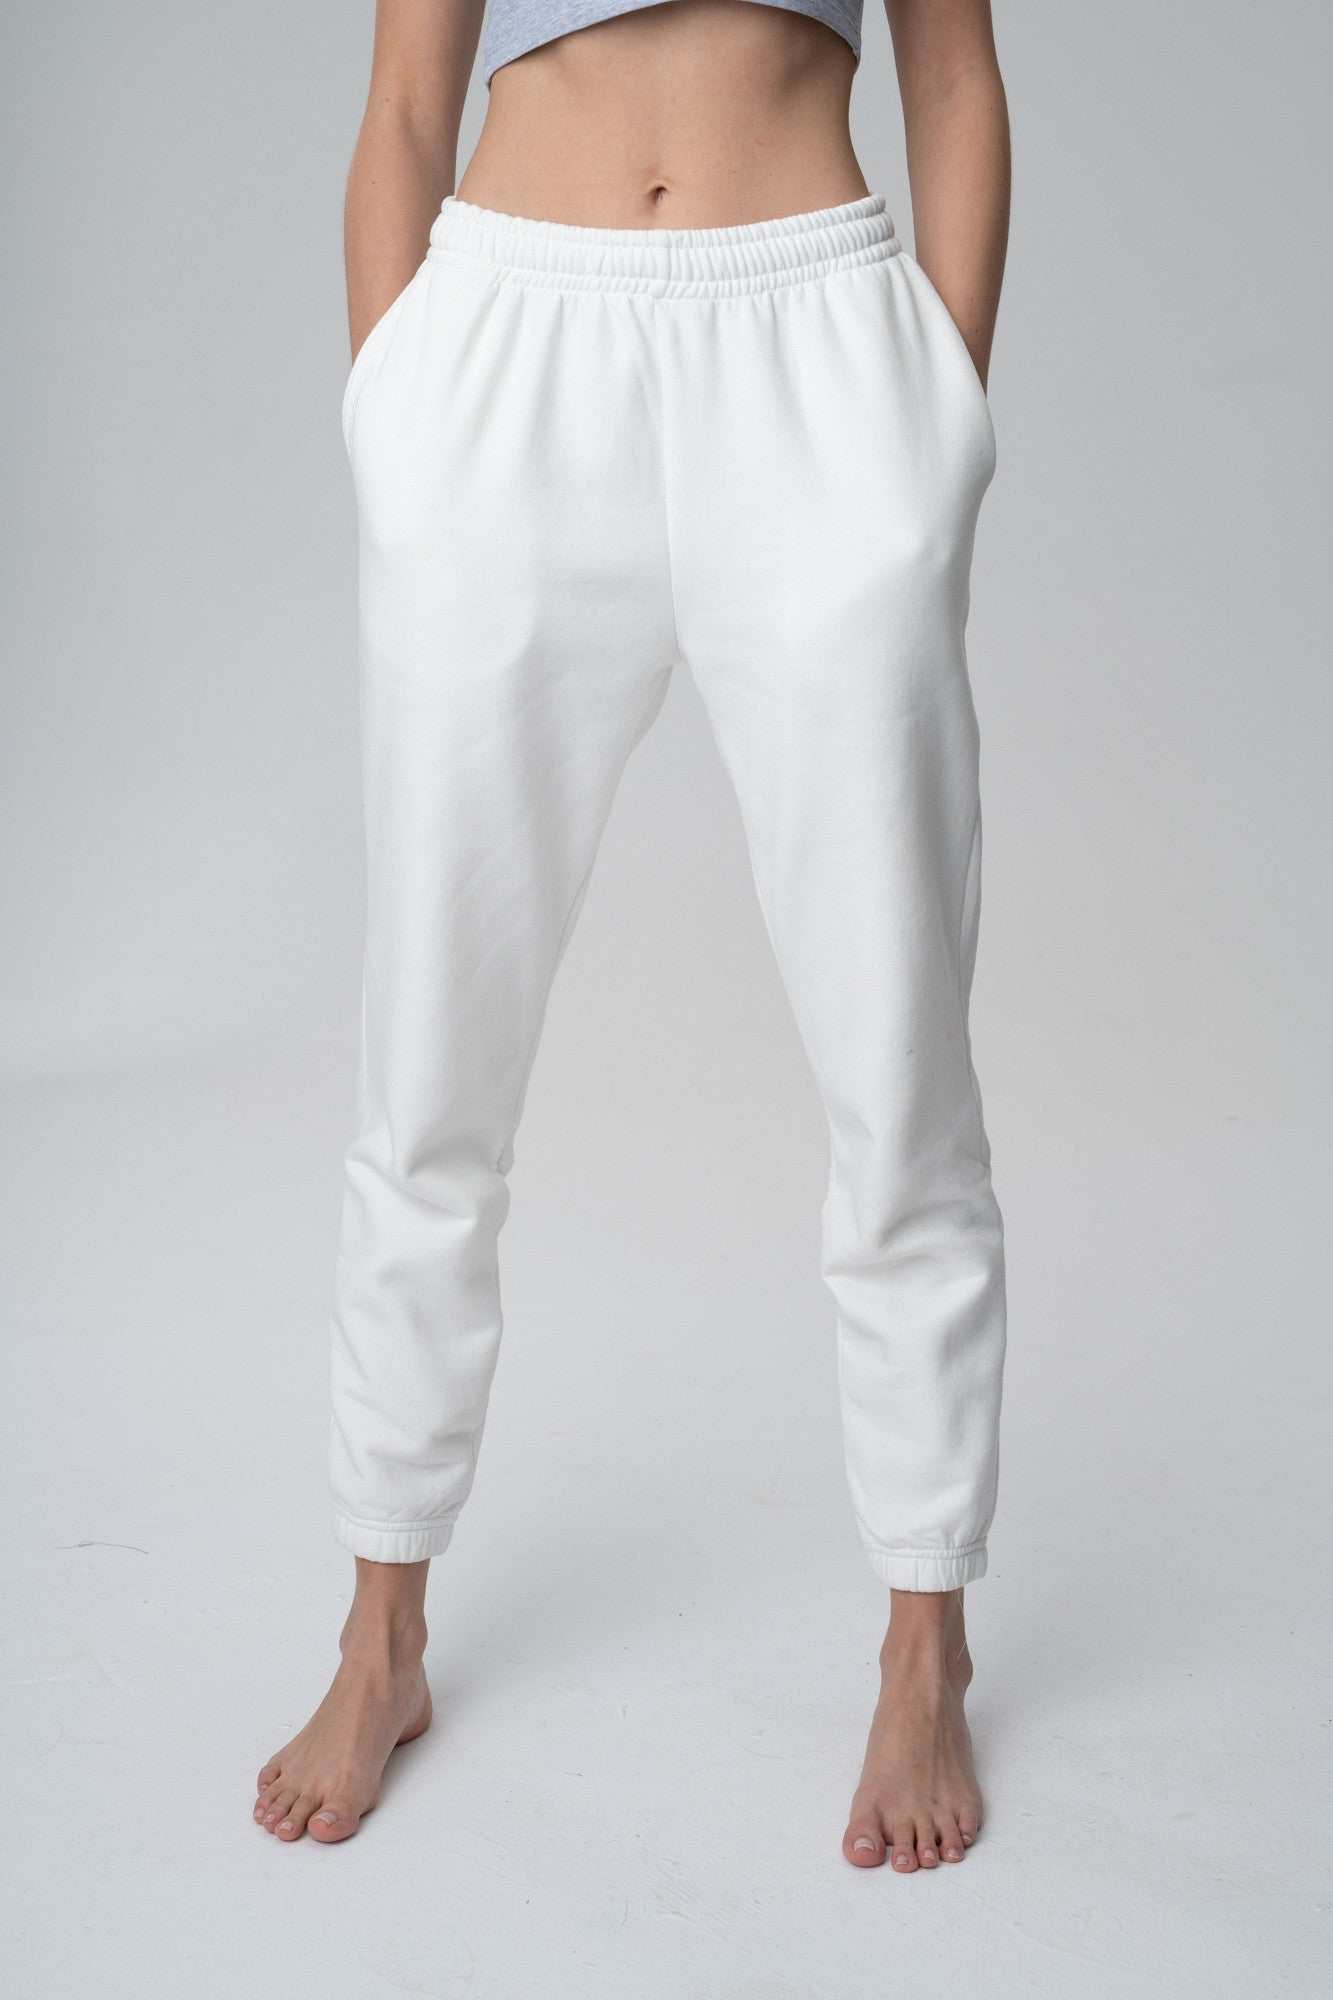 Off White Thin Sweatpants - LesGoodies